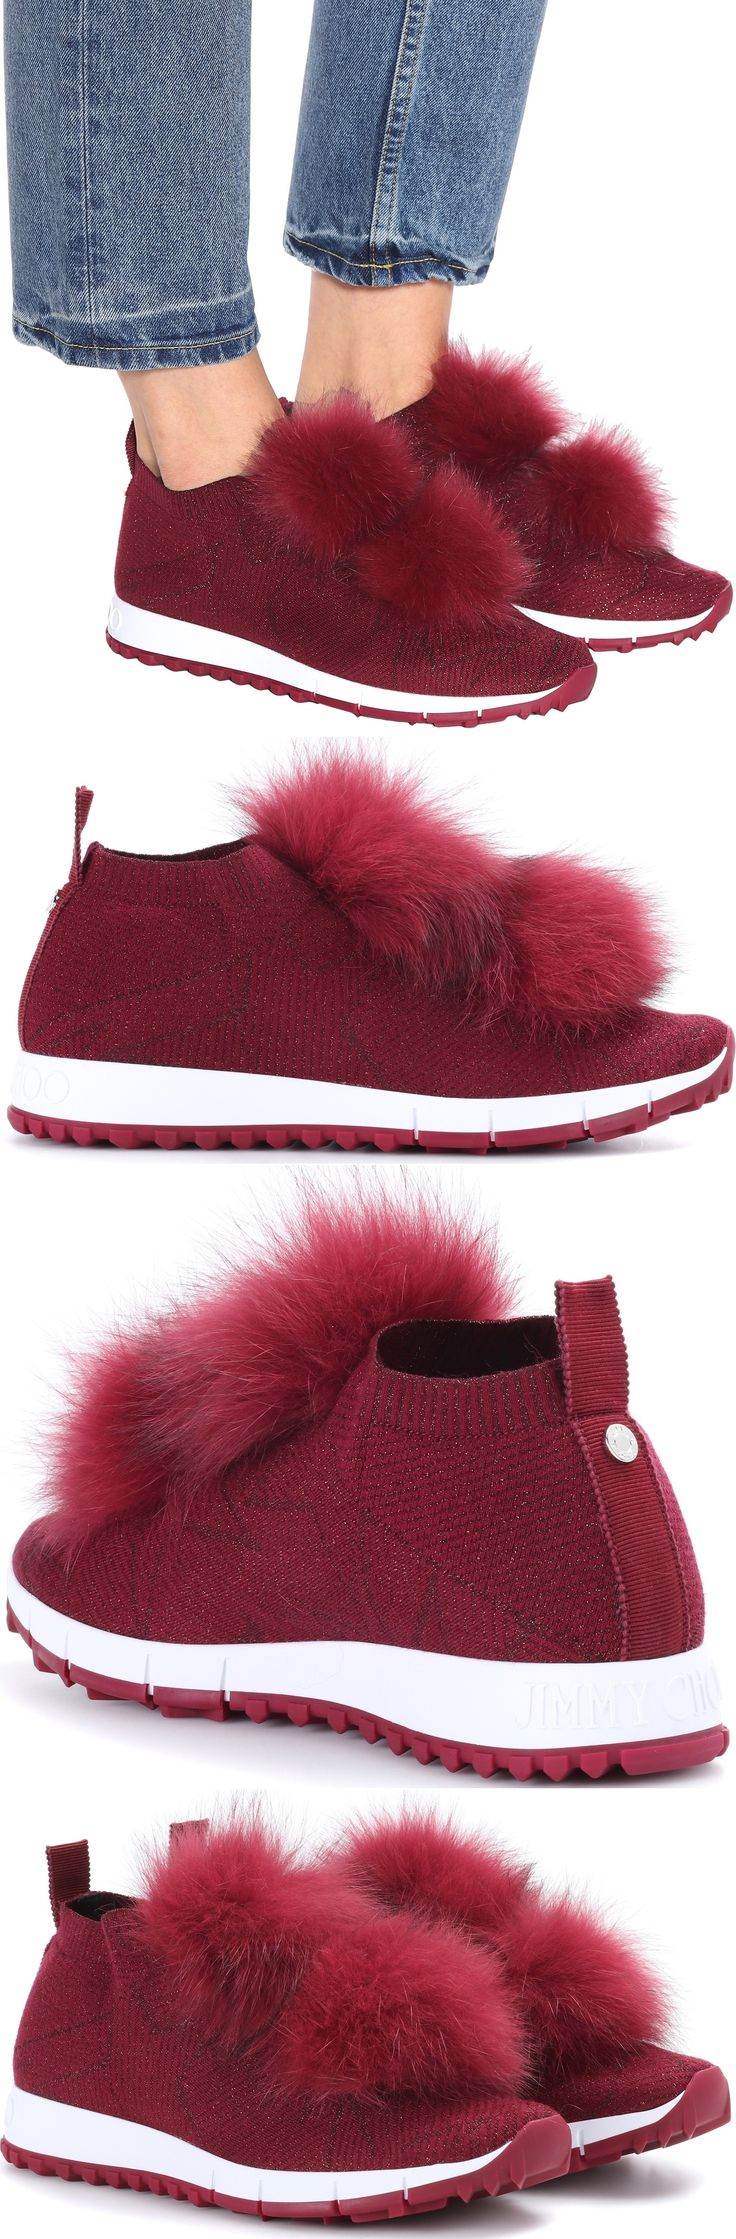 Offered here in a shimmering burgundy-red hue, Jimmy Choo's Norway sneakers are crafted from stretch fabric that provides a sock-like fit – a key look this season. Voluminous fur pompoms and metallic threading add flamboyant character, while the chunky rubber sole keeps the pair sportive.